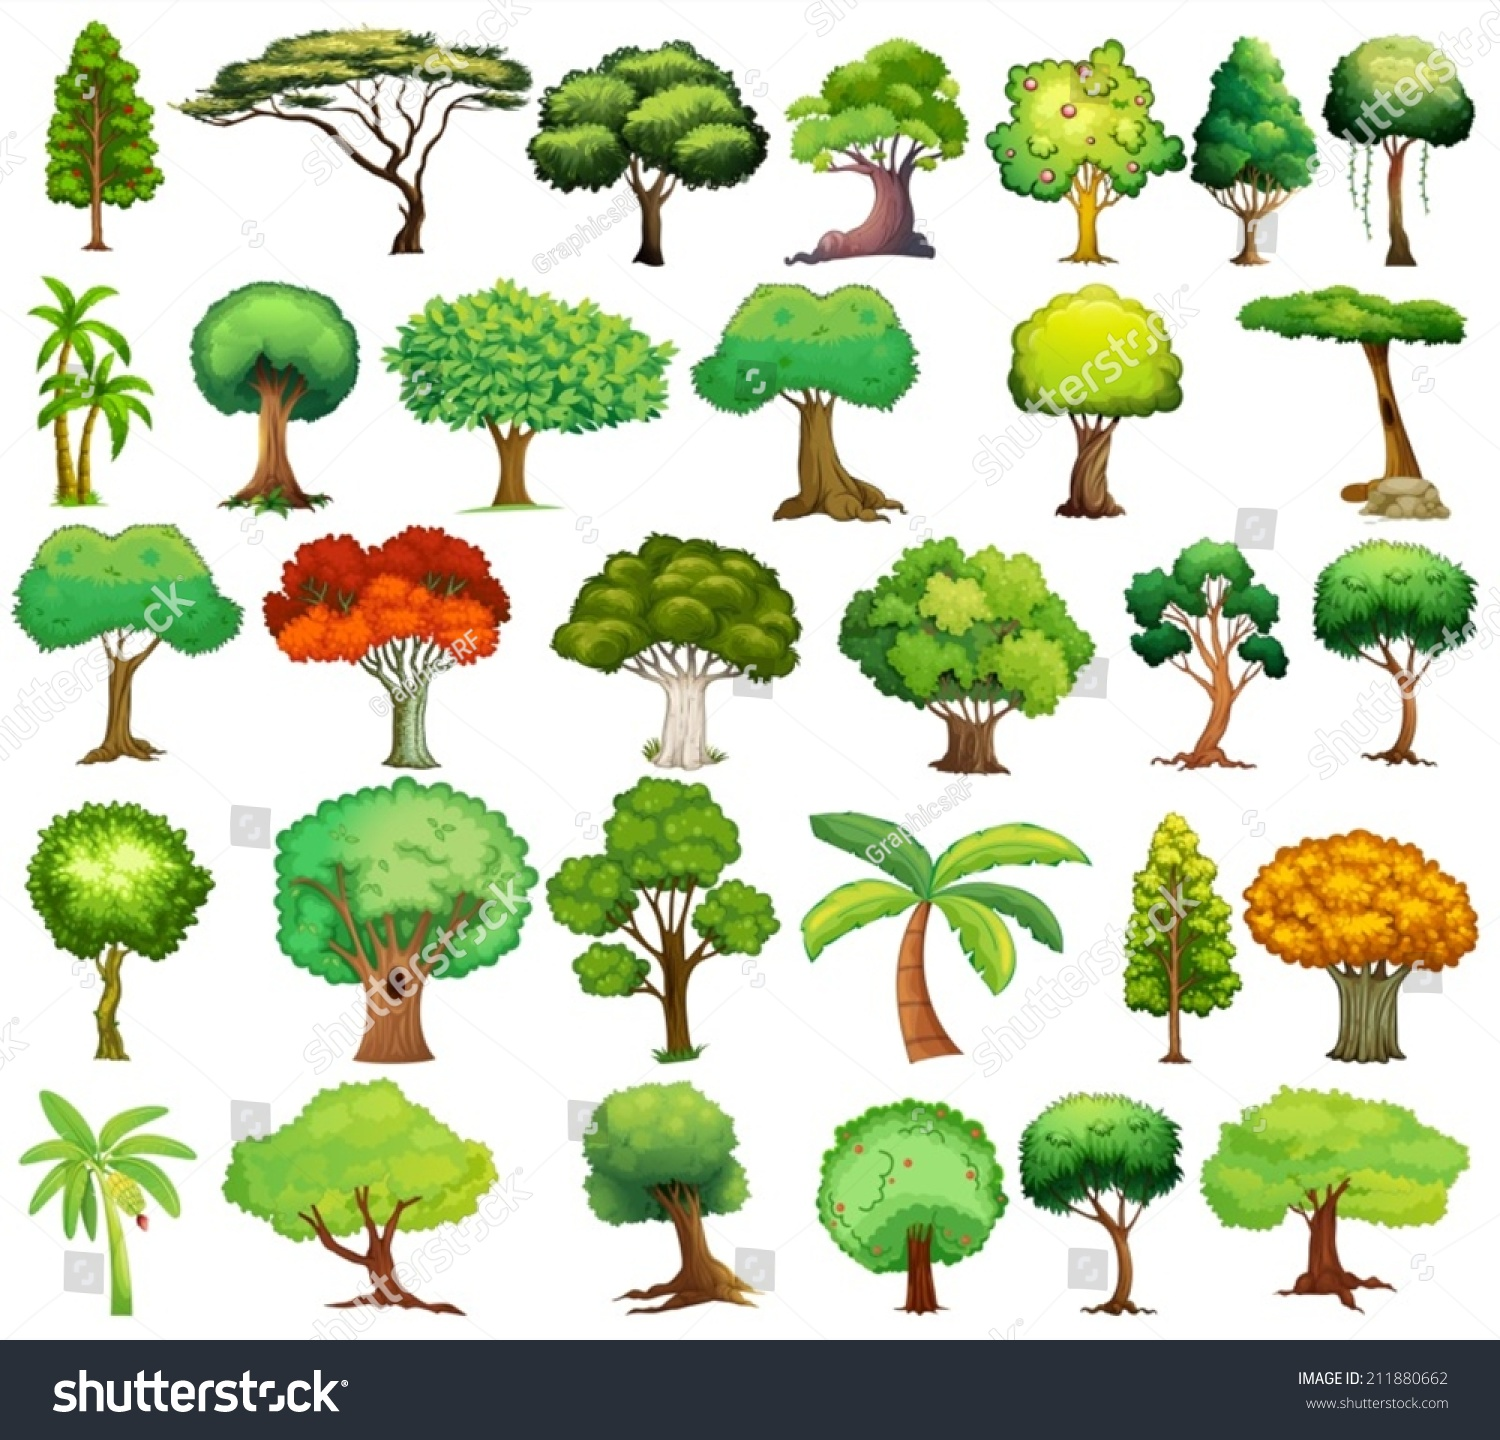 Back gt Gallery For Different Types Of Trees With Names And Pictures